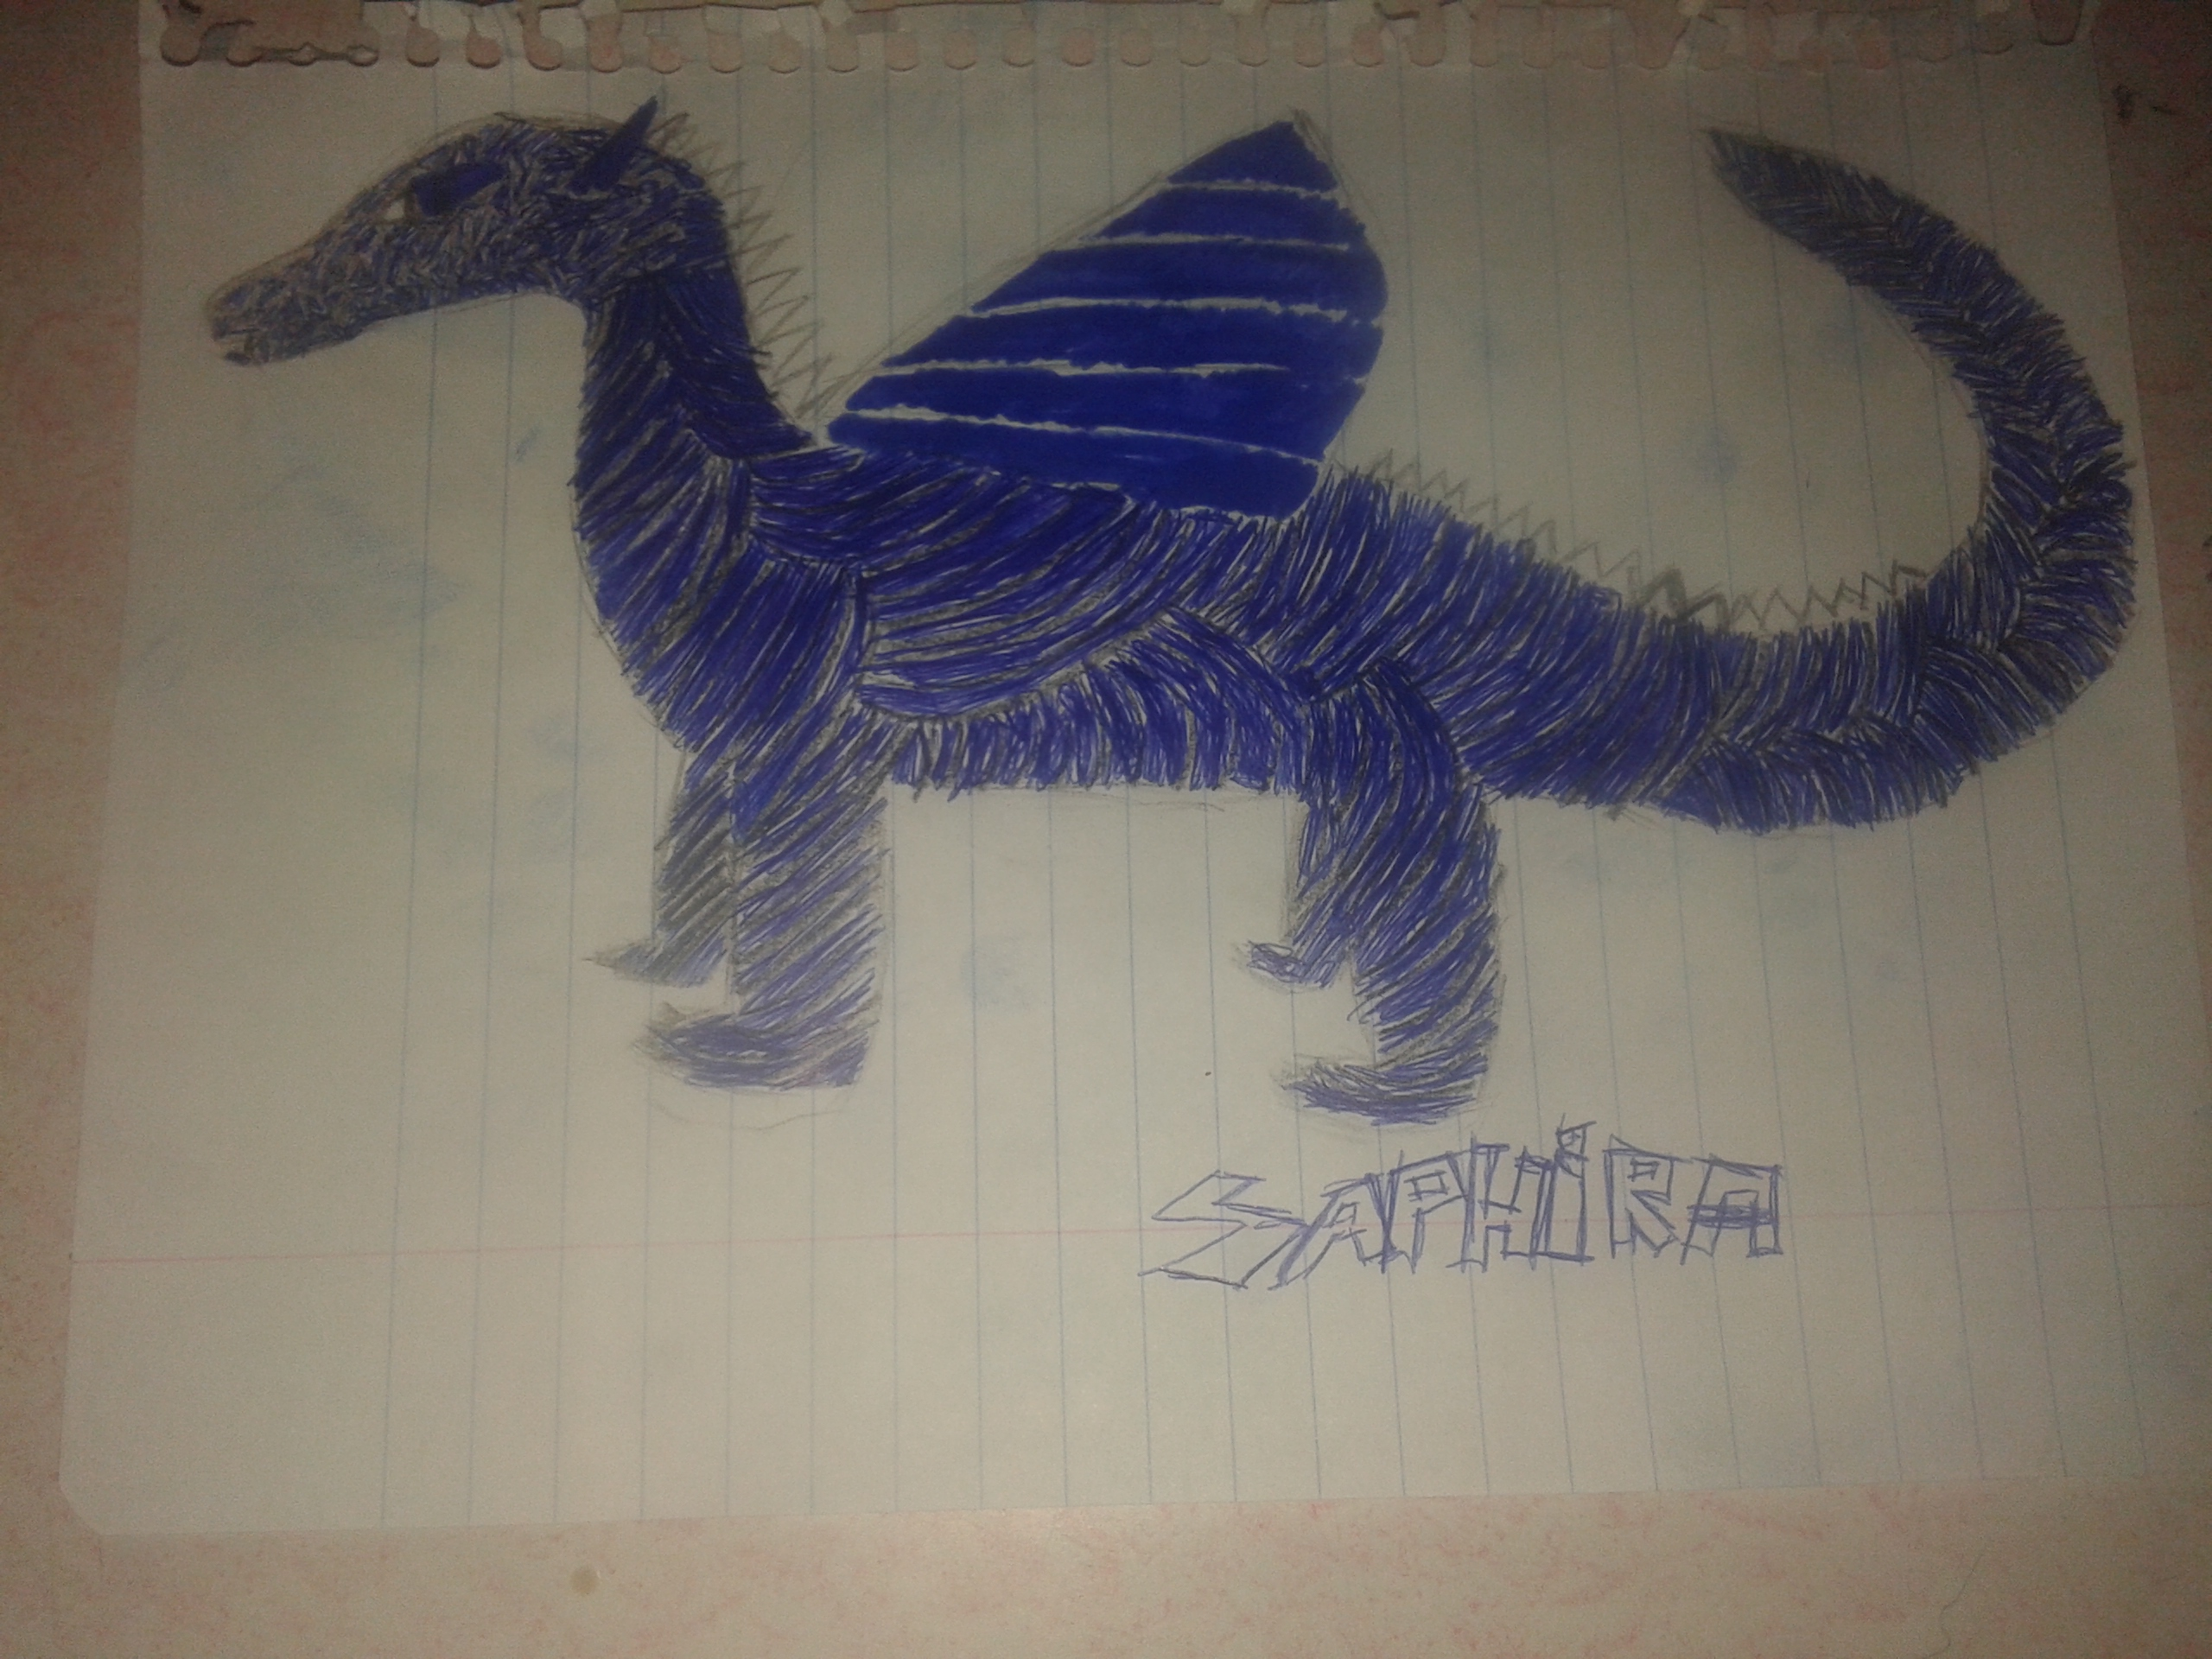 Saphira (Eragon's Dragon from the same named book)